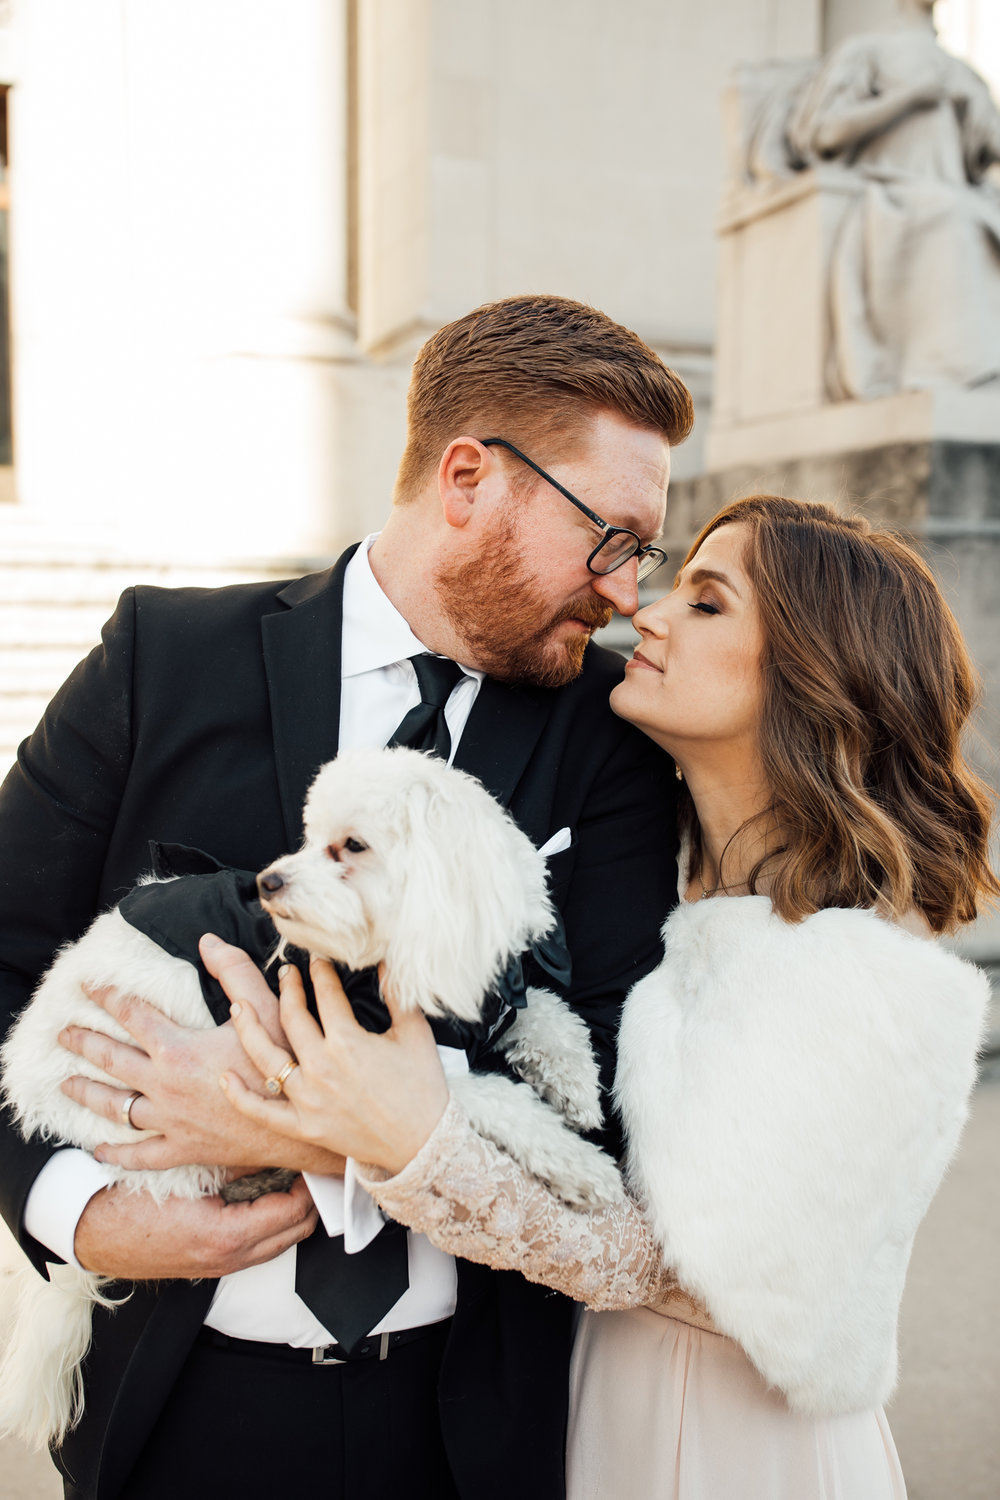 memphis-courthouse-elopement-thewarmtharoundyou-amanda-michael (129 of 143).jpg